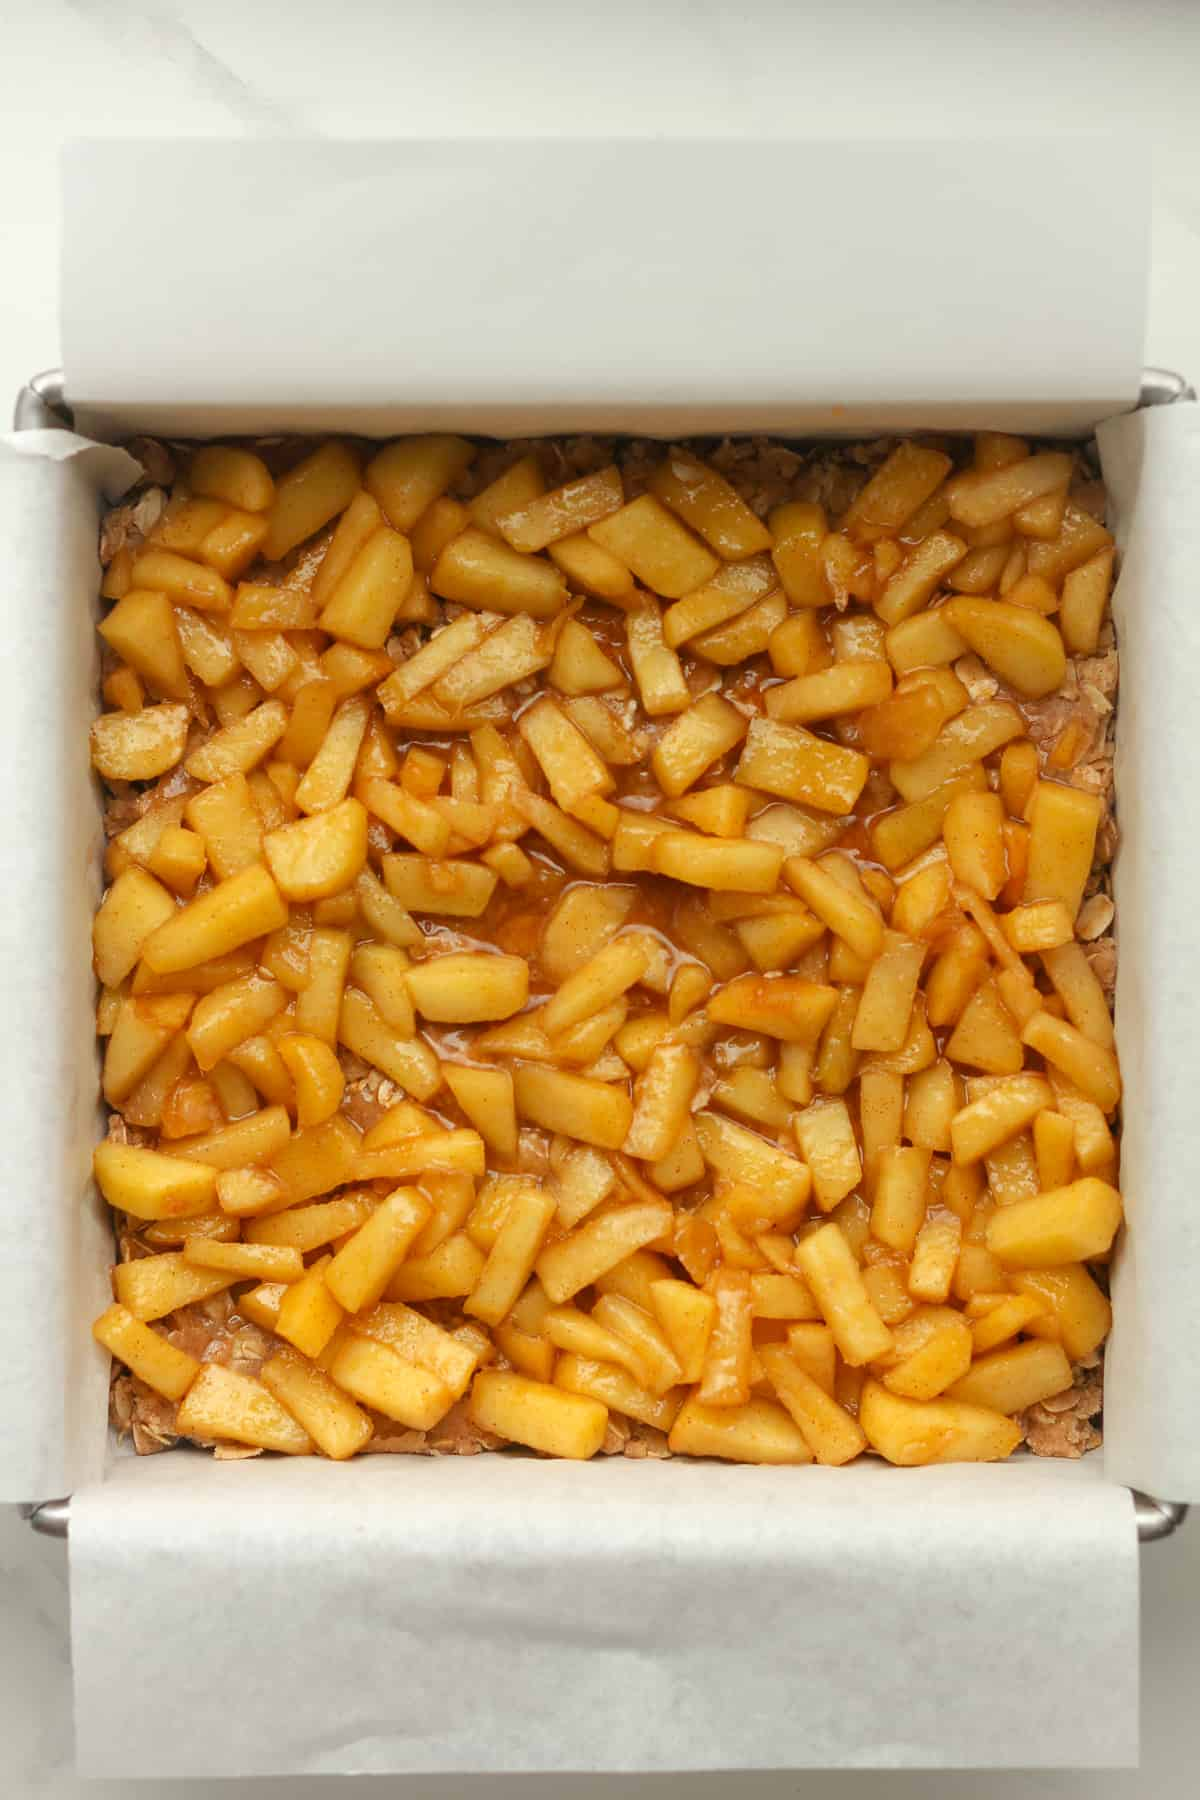 A pan of the apple layer.